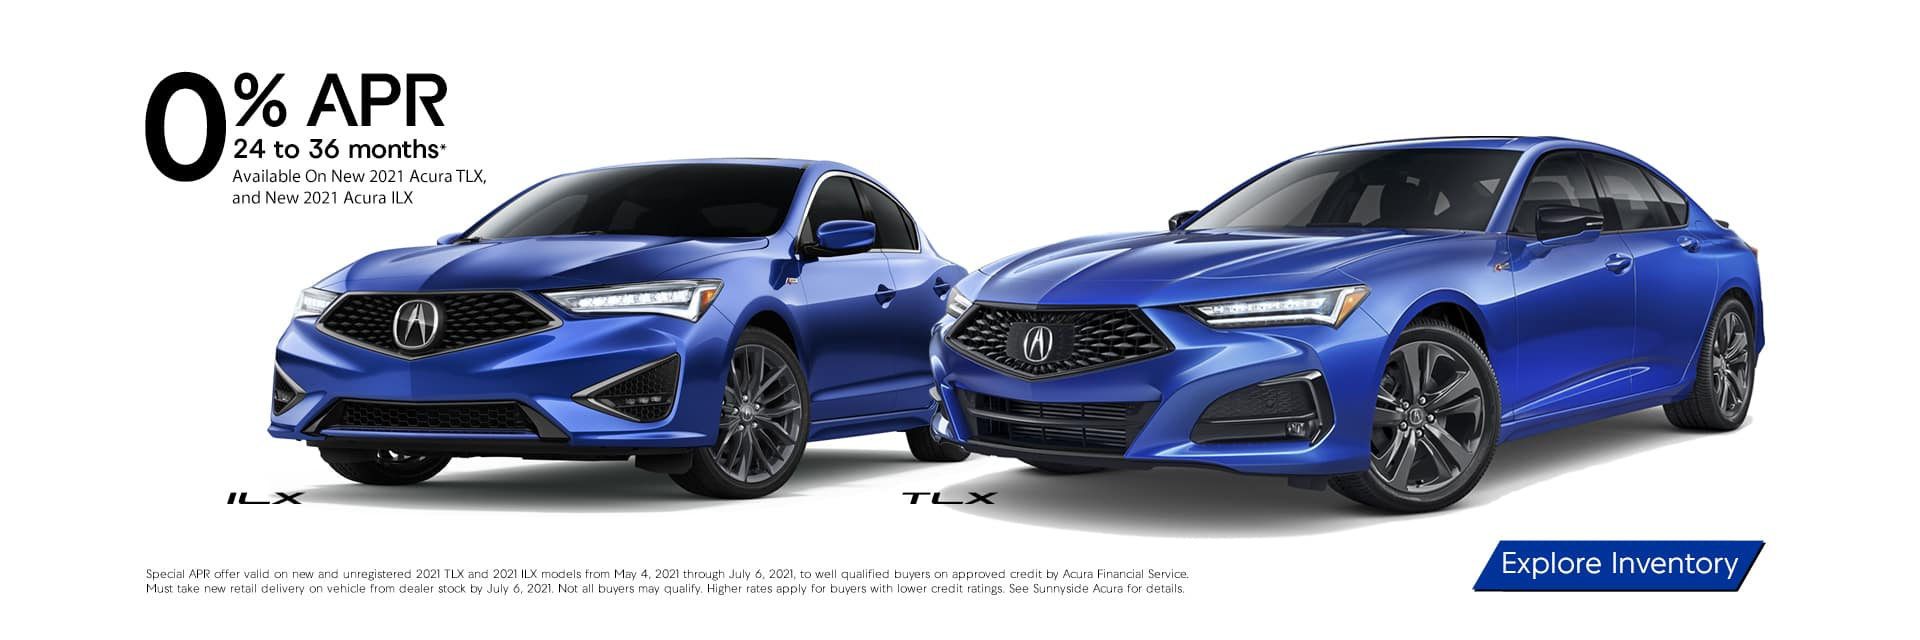 2021 Acura TLX 2021 Acura ILX 0.9% APR for 24 to 36 months at Sunnyside Acura Nashua, NH 03063